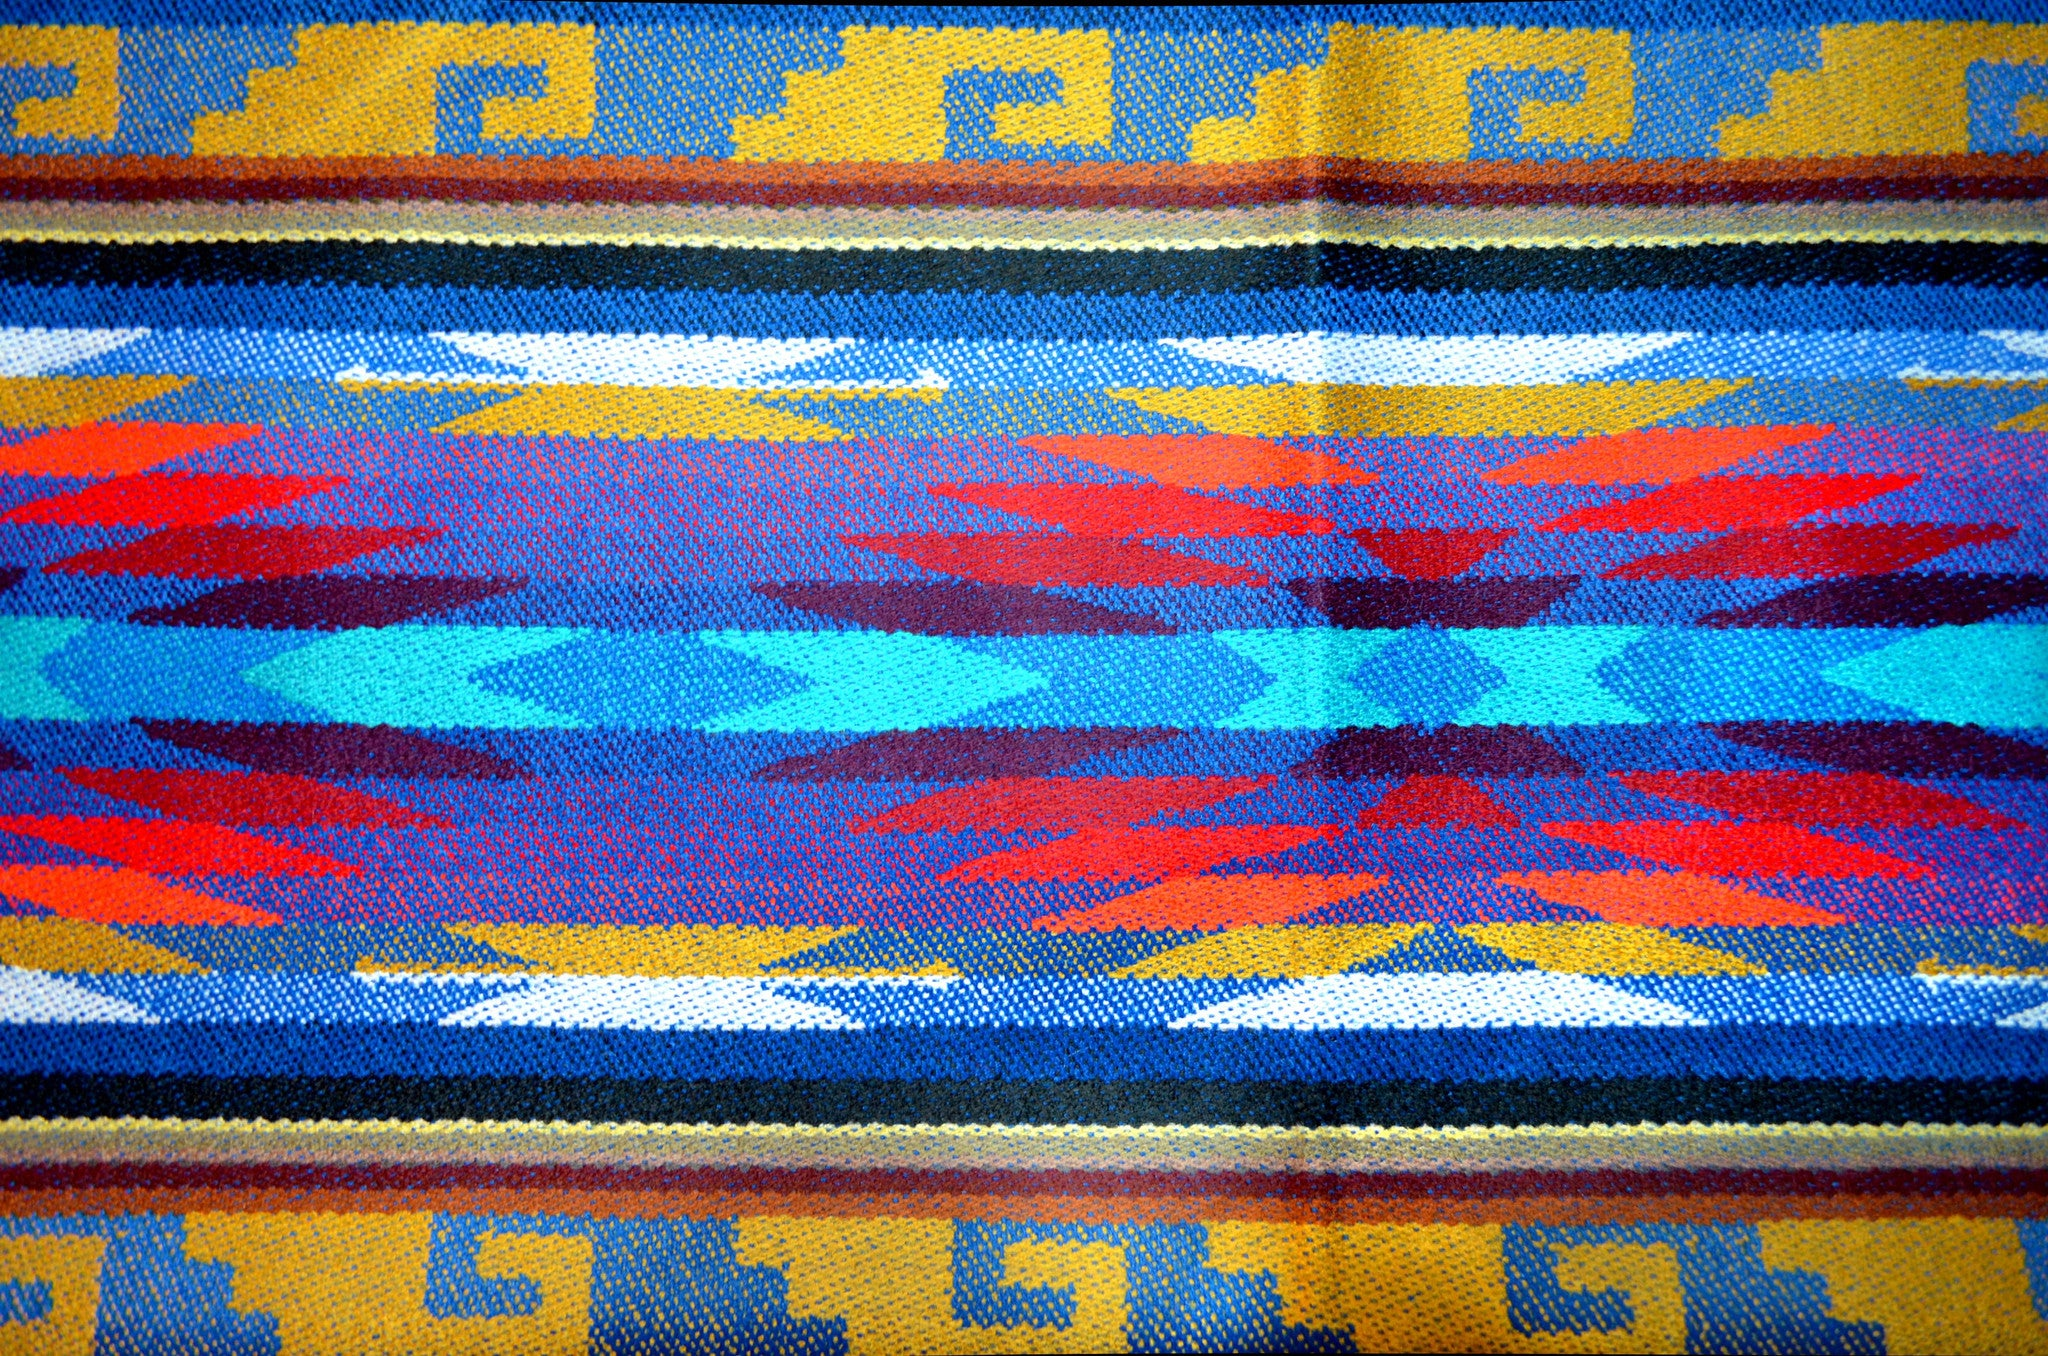 OTAVALO SHAWL - BLUE MOON